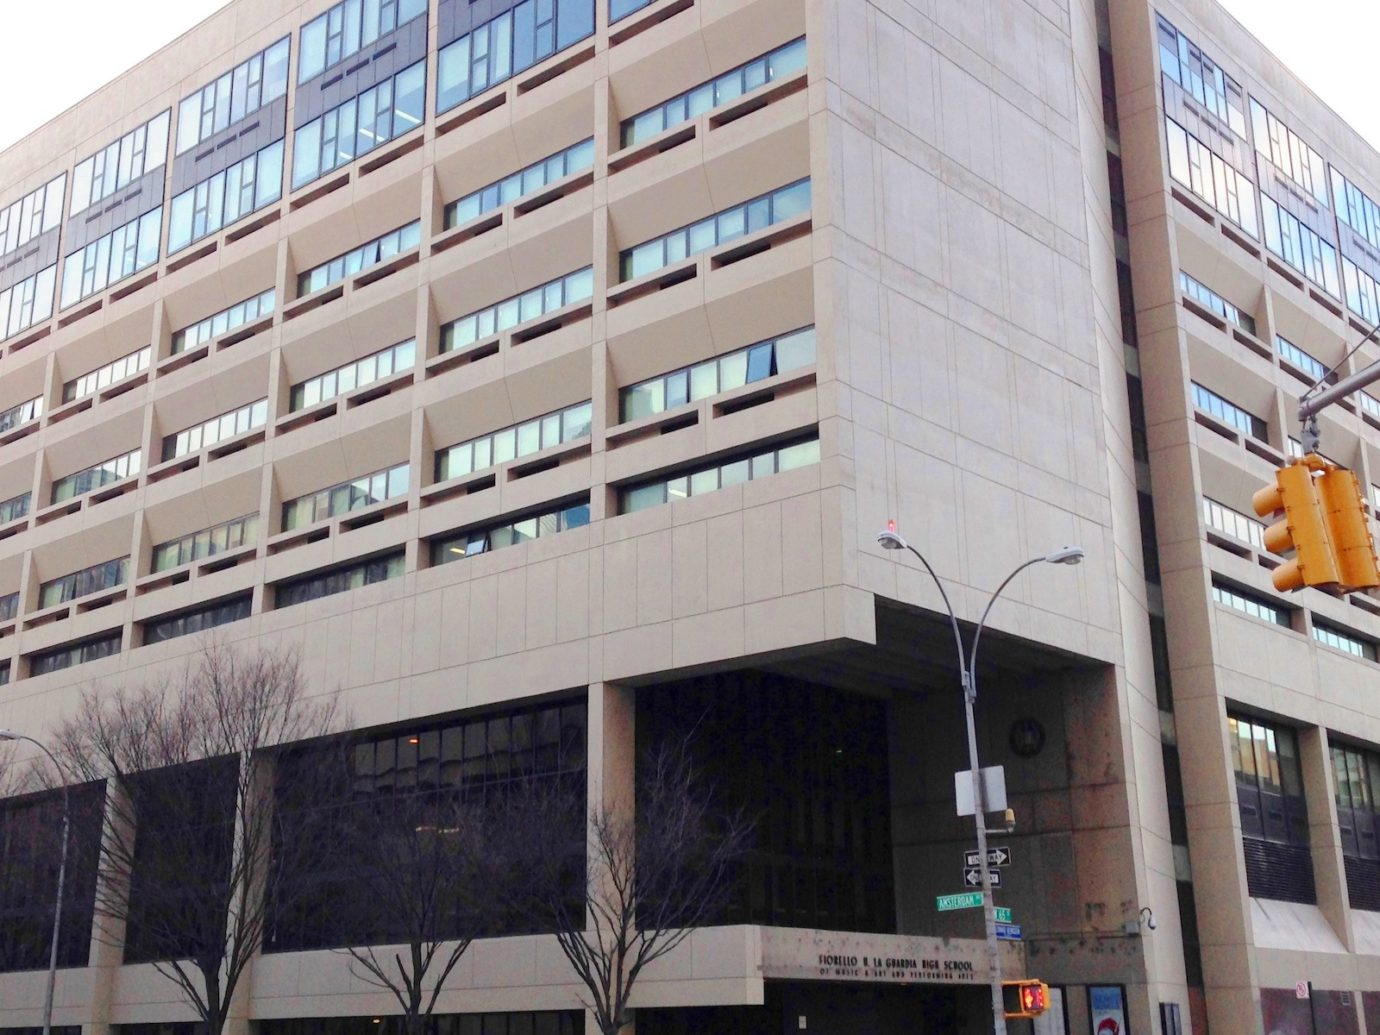 Nyc High School Known For Fame Bans Nazi Symbols From The Sound